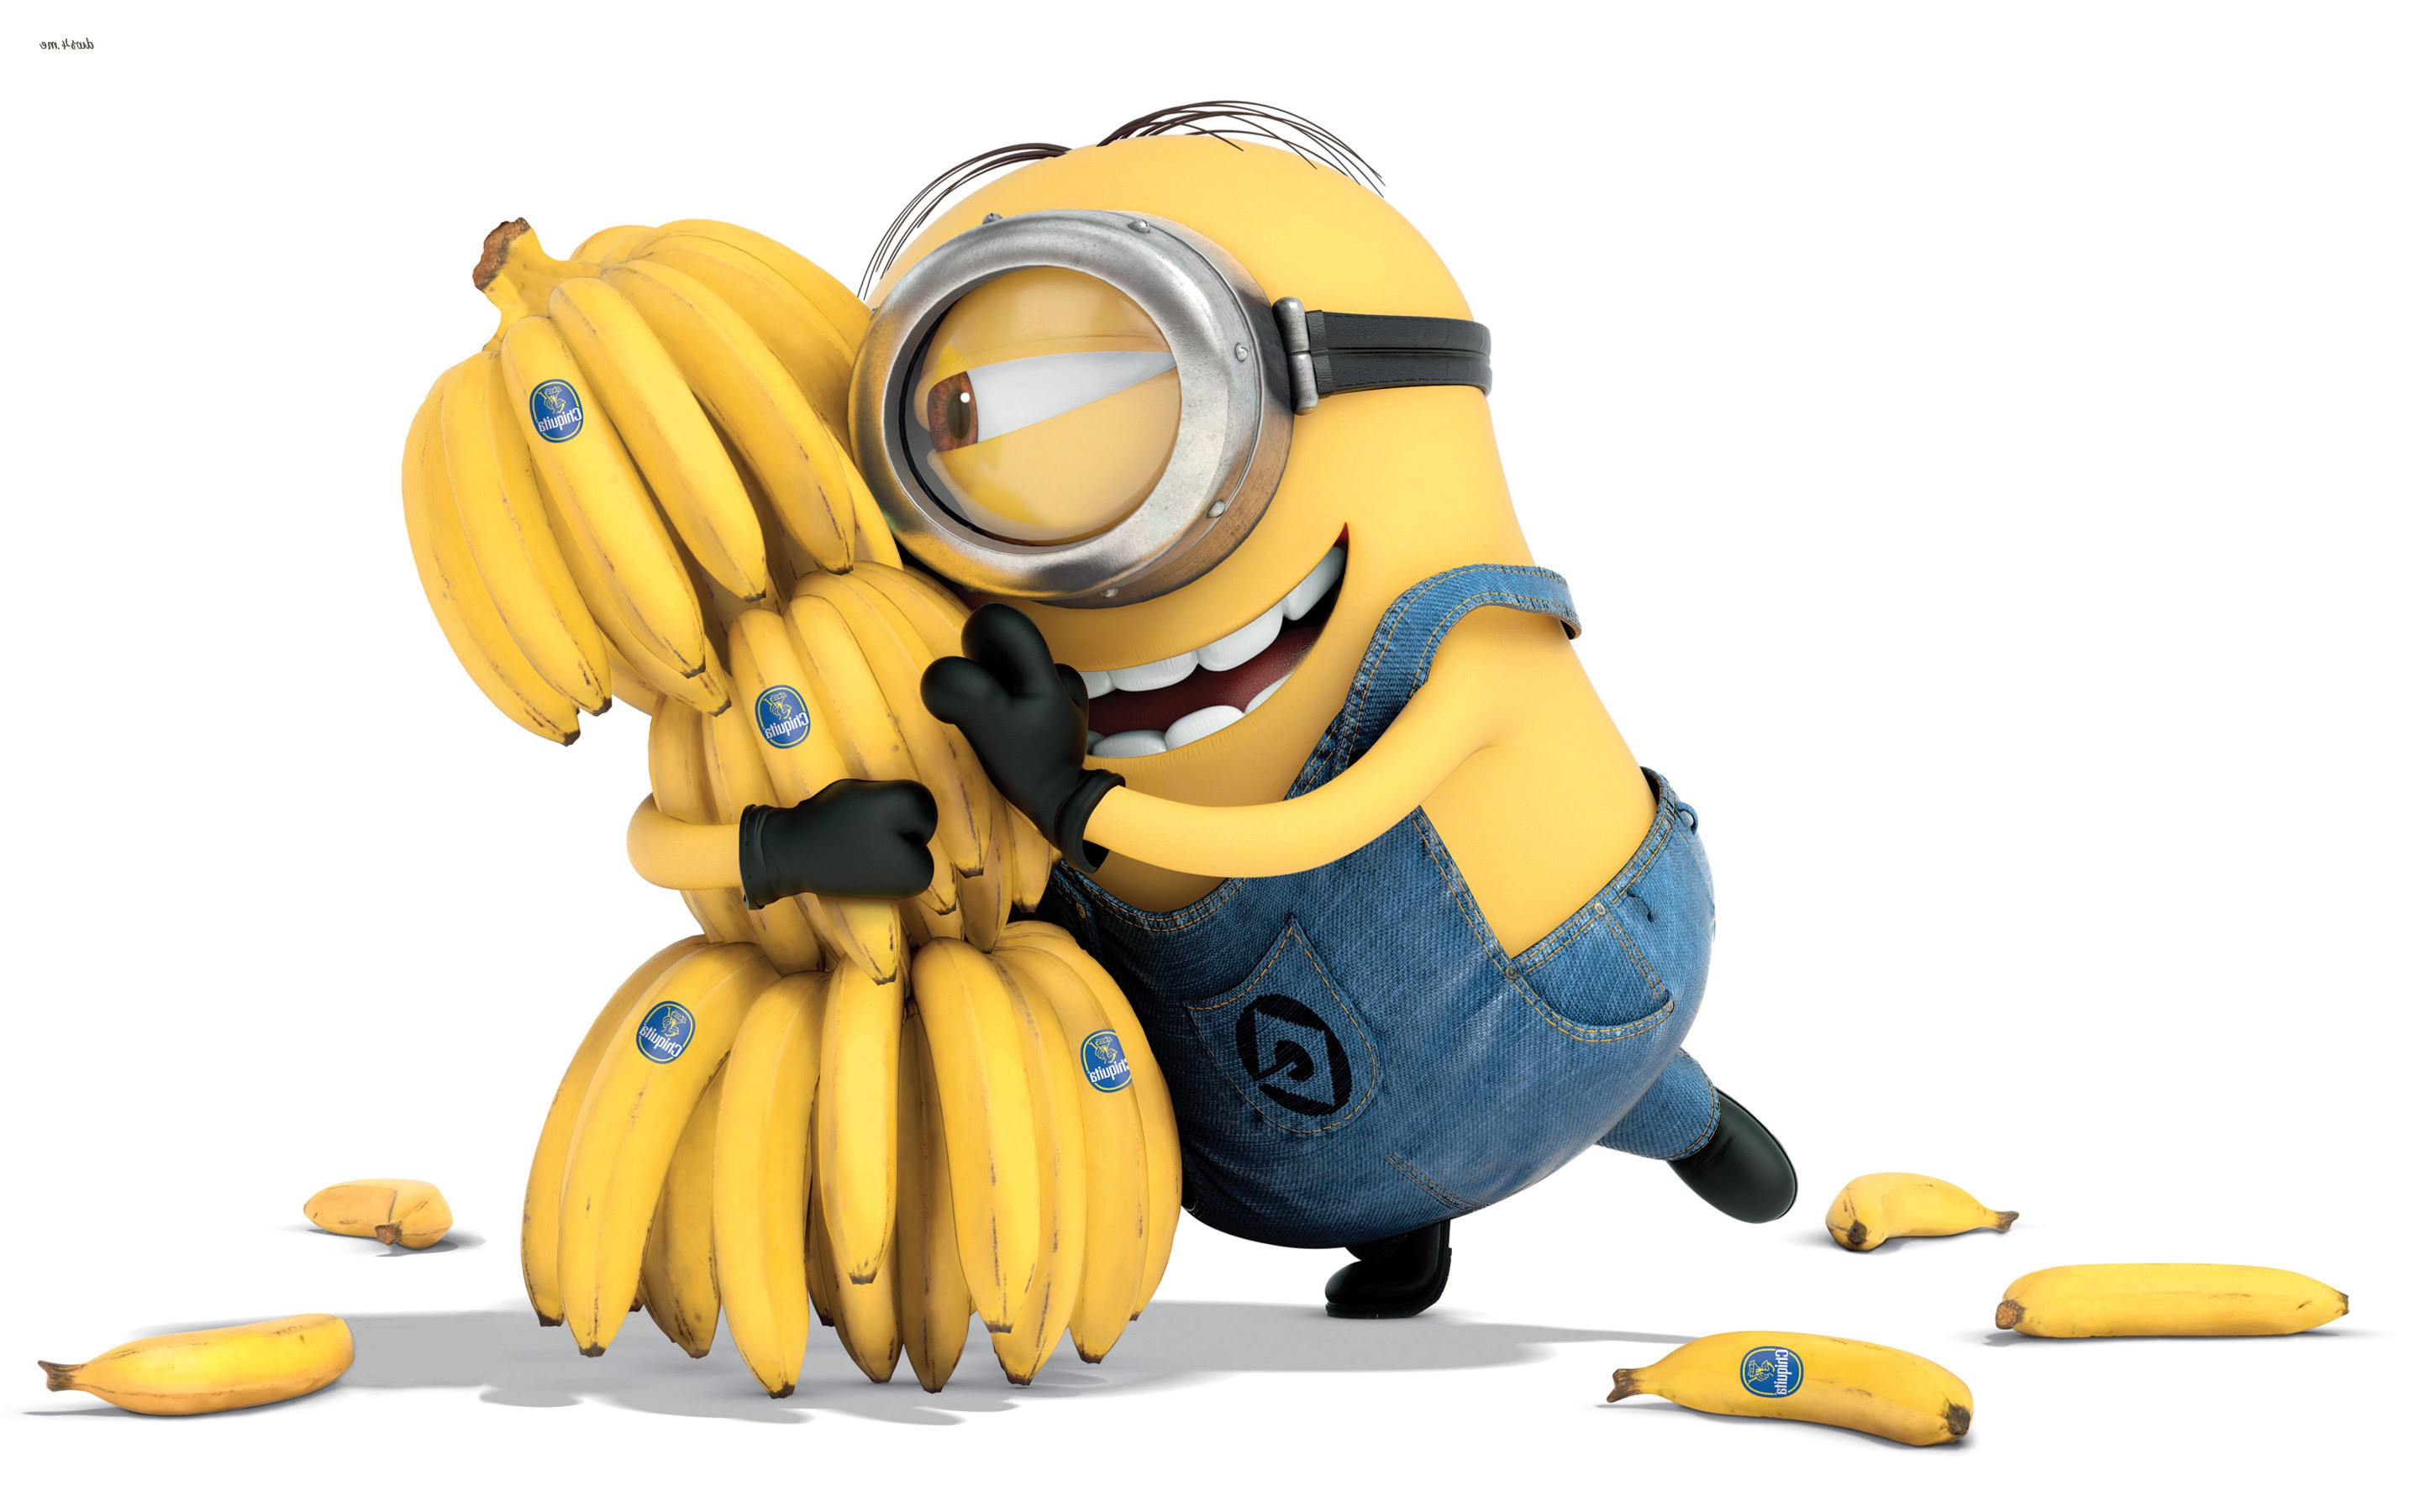 minion bananas, hd cartoons, 4k wallpapers, images, backgrounds